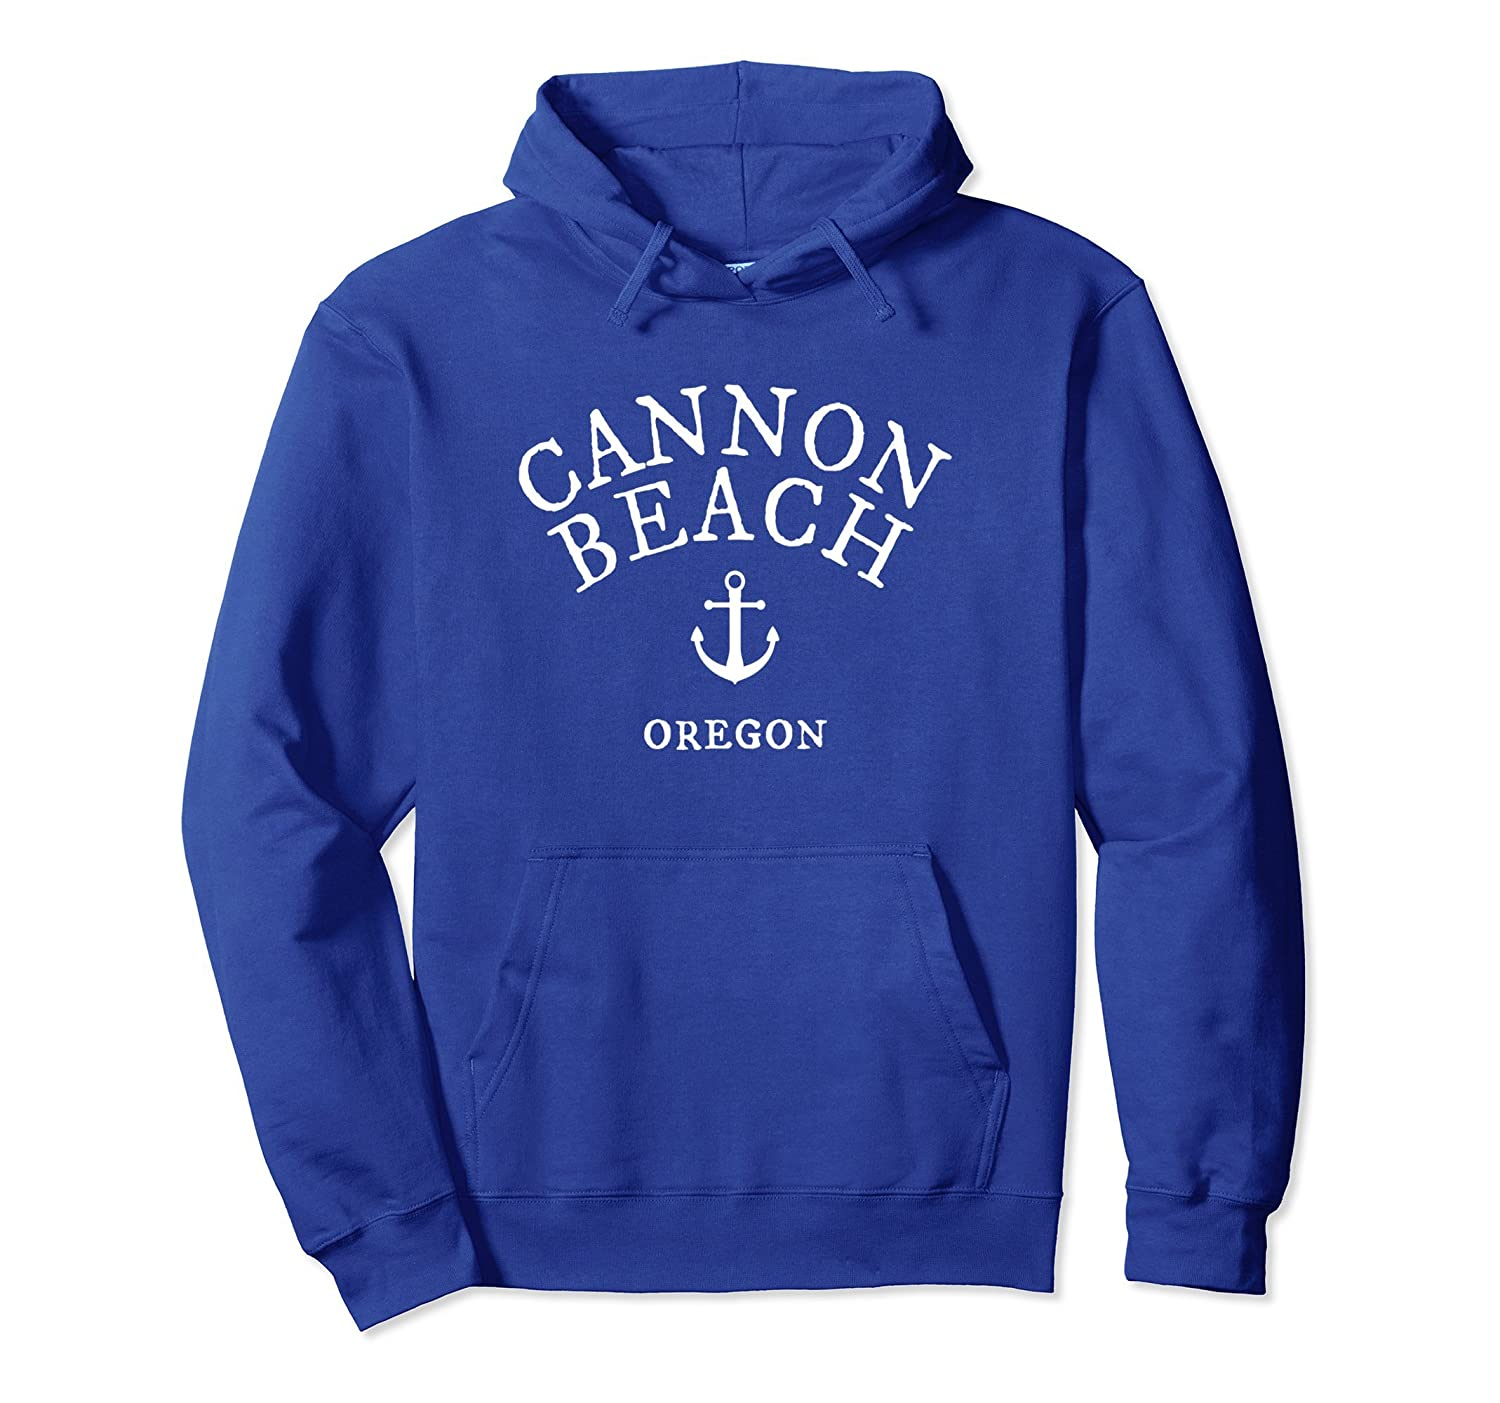 Cannon Beach OR Hoodie, Oregon Sea Town Pullover-TH